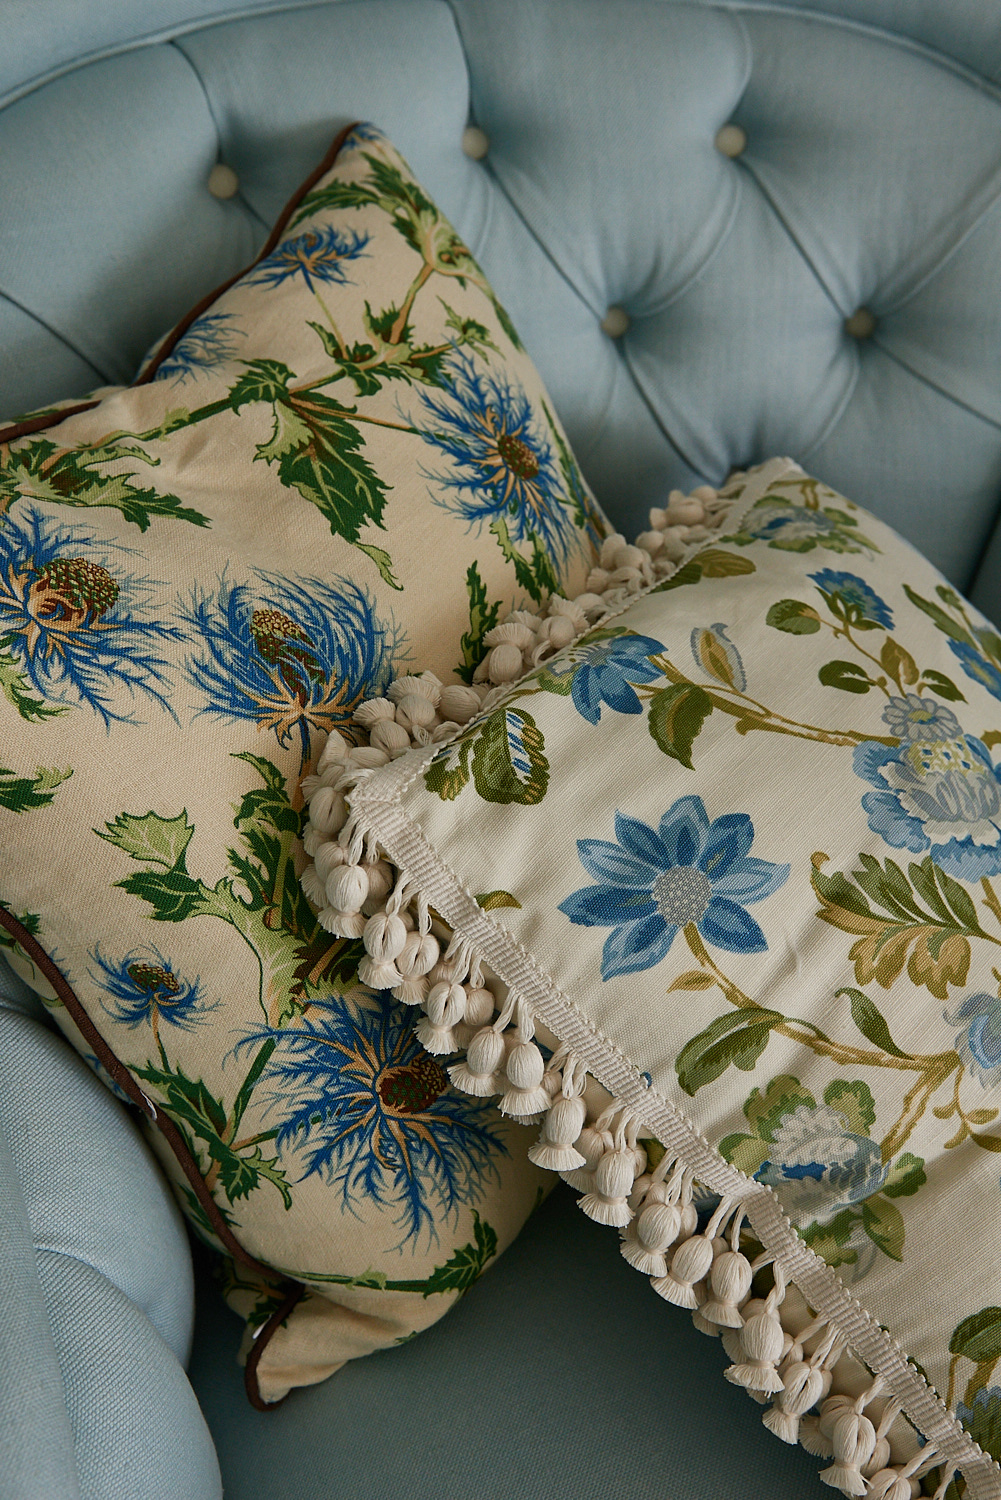 Grey tufted chair with floral custom pillows and tassels